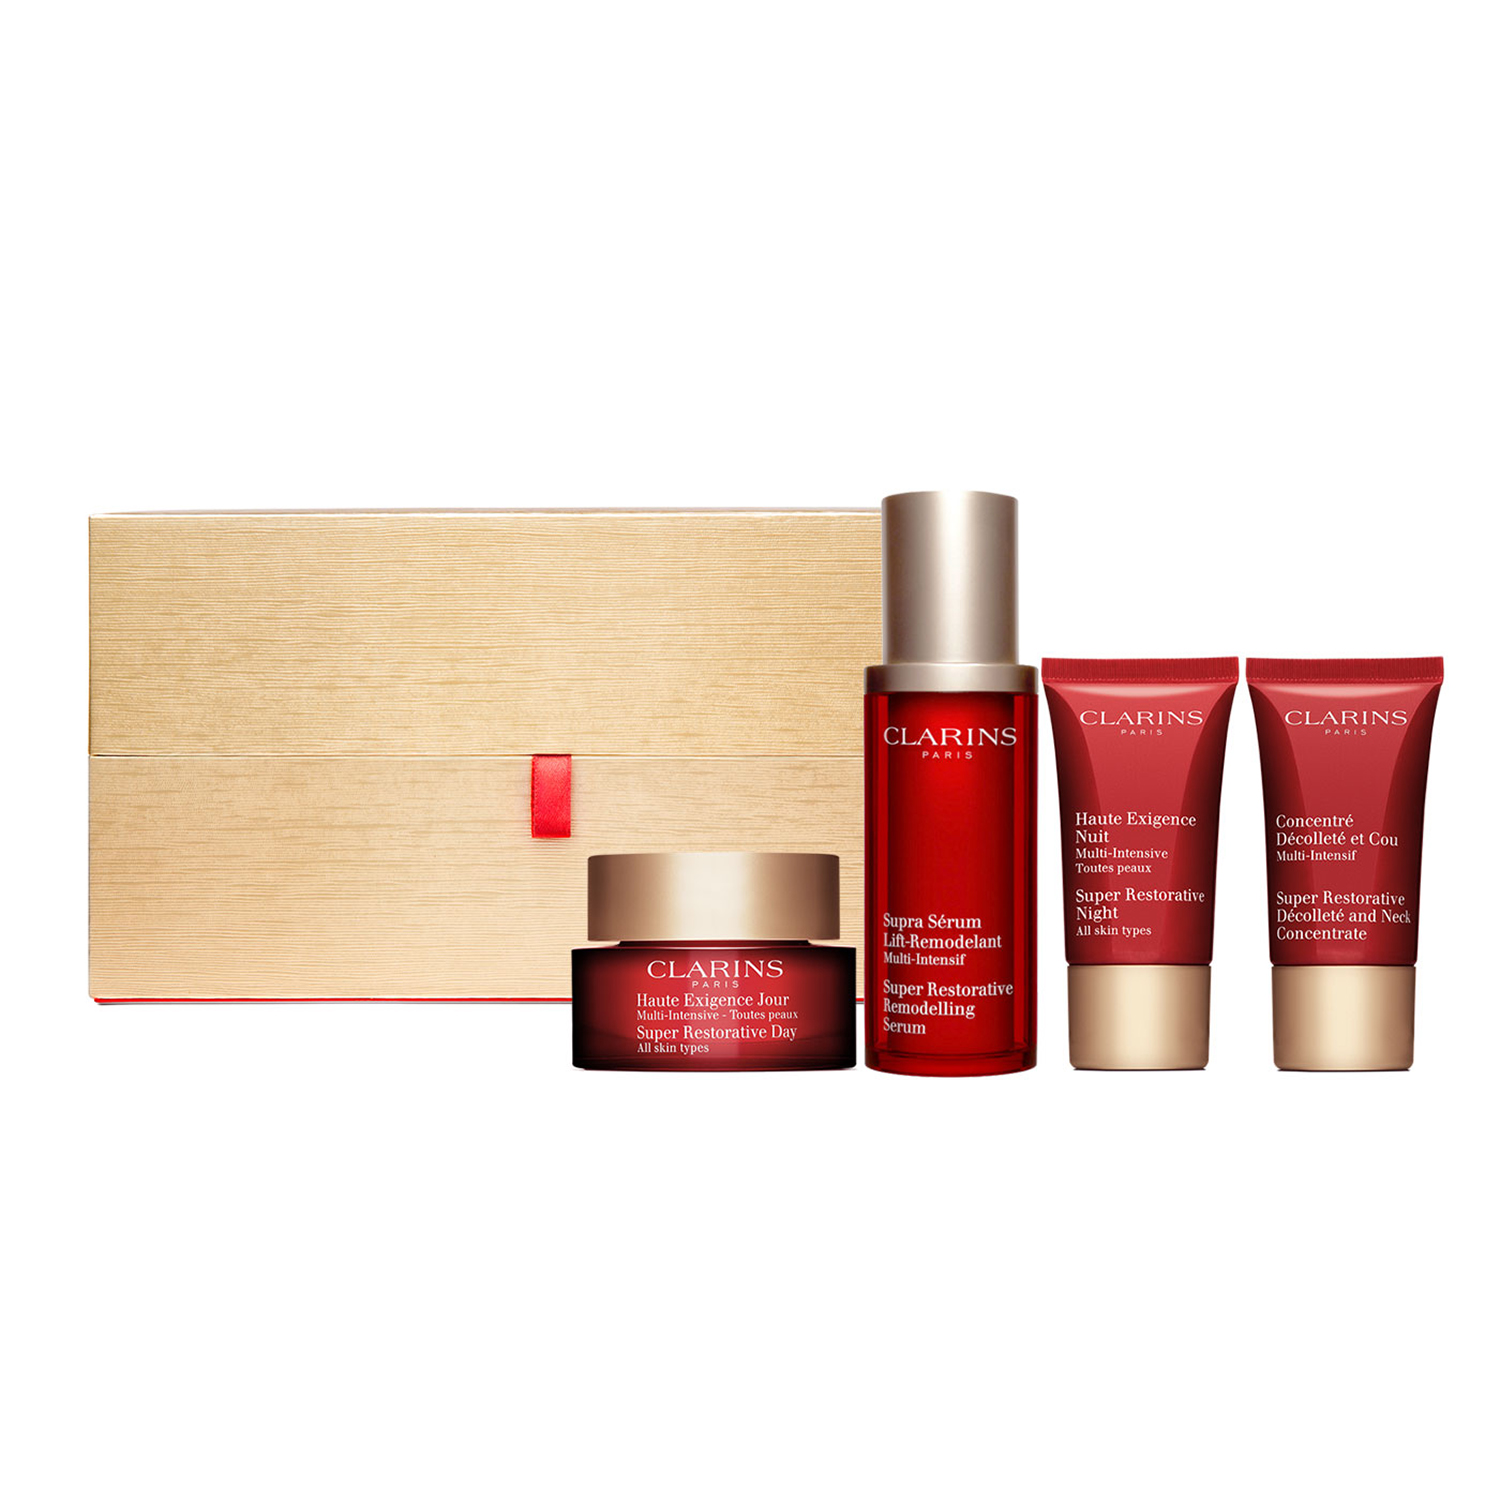 Clarins Super Restorative Luxury Collection, $205, Bloomingdales.com (Photo: Courtesy Clarins).